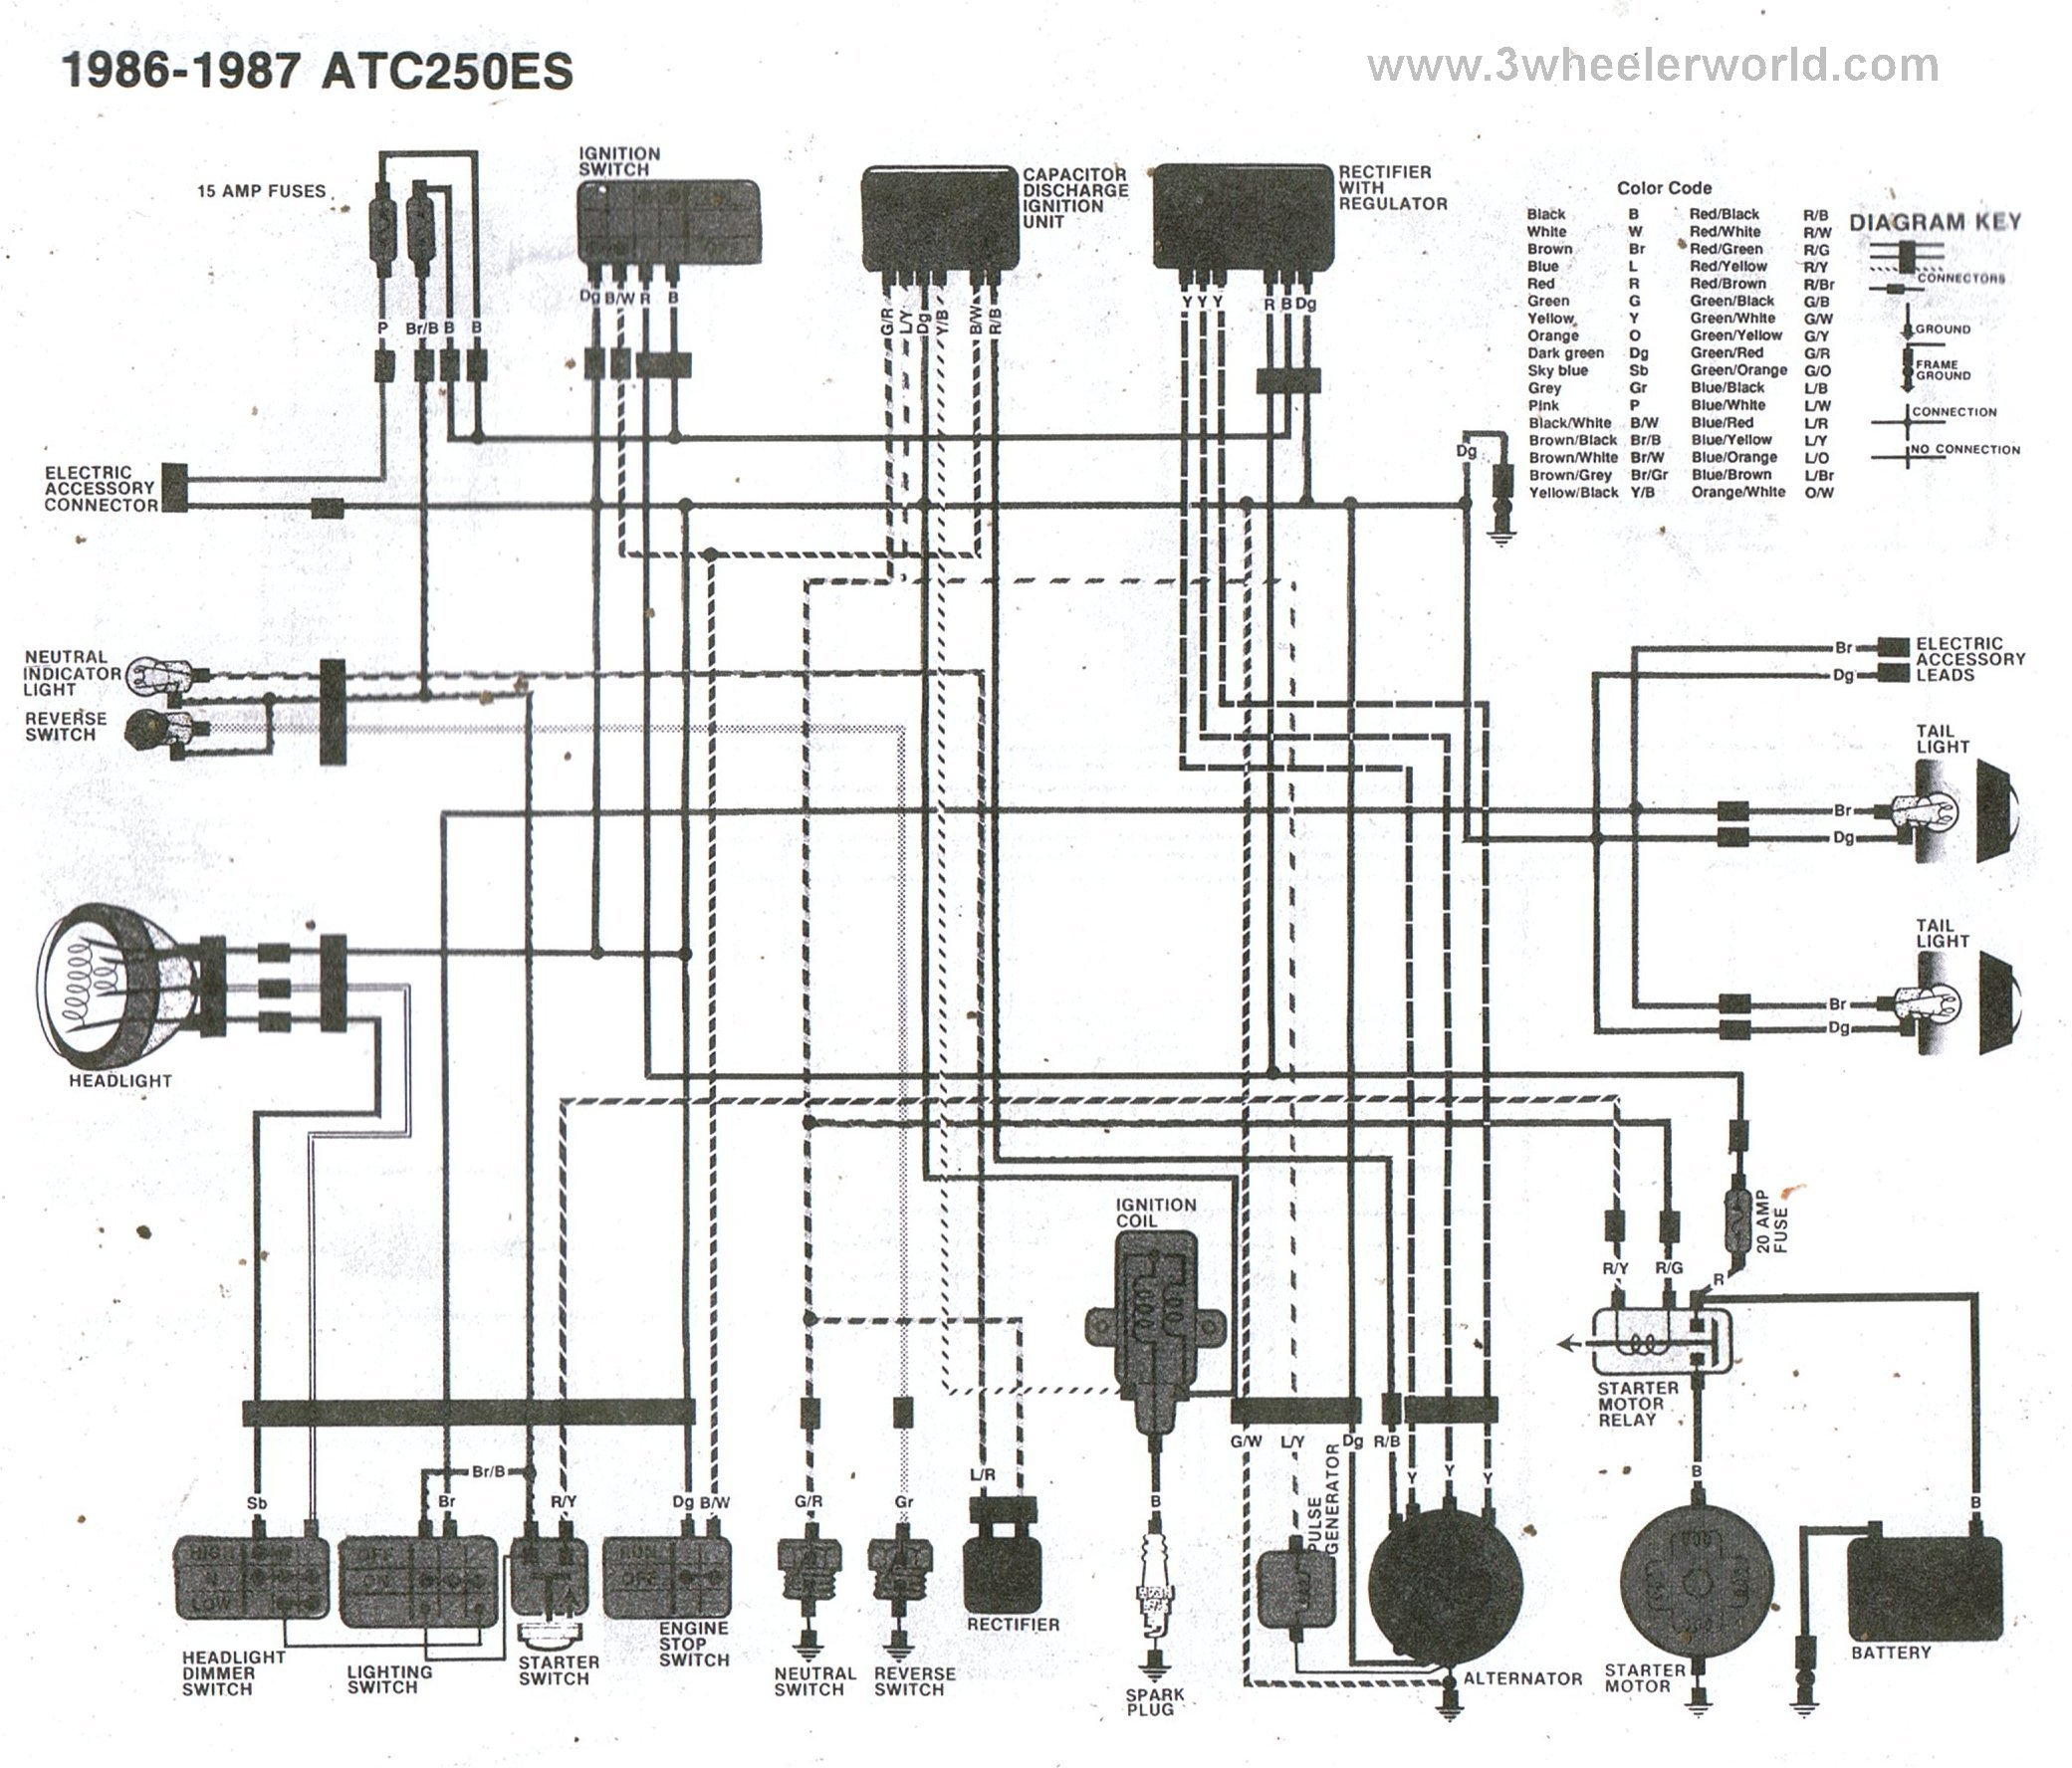 ATC250ESx86Thru87 3 wheeler world tech help honda wiring diagrams yamaha moto 4 250 wiring diagrams at fashall.co